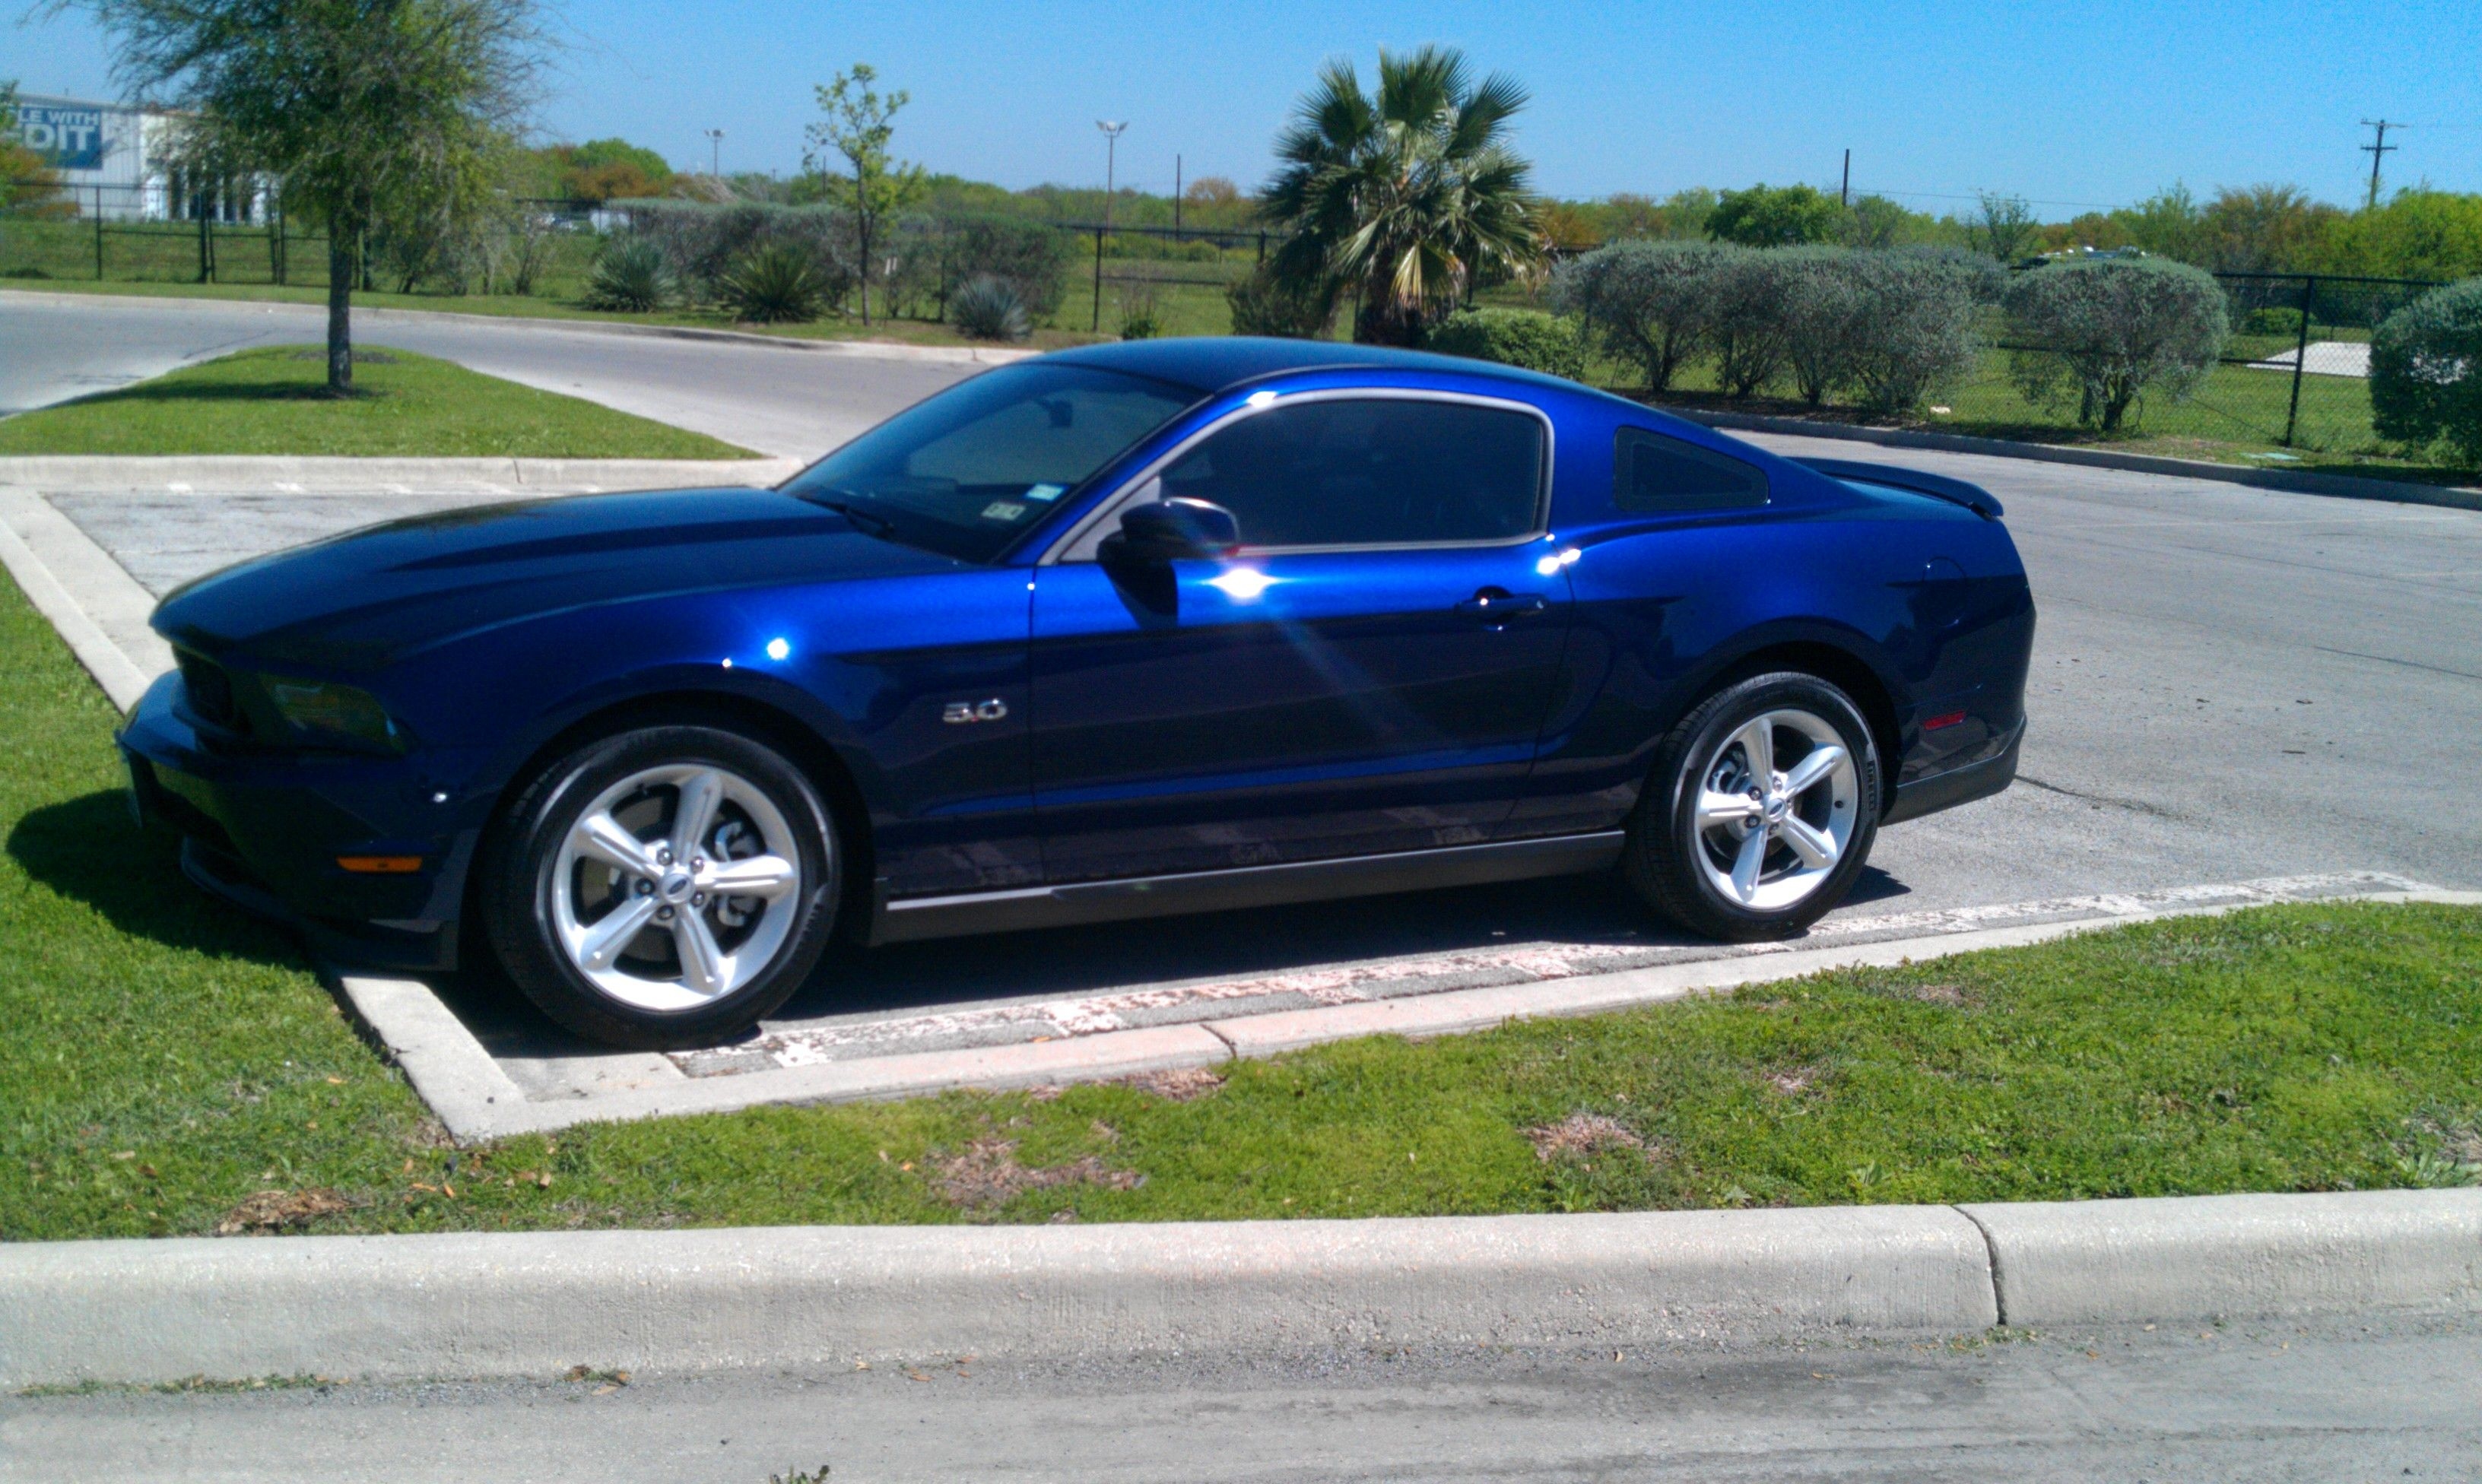 2012 Ford Mustang Gt Kona Blue Base Model Call Her Angelina Added